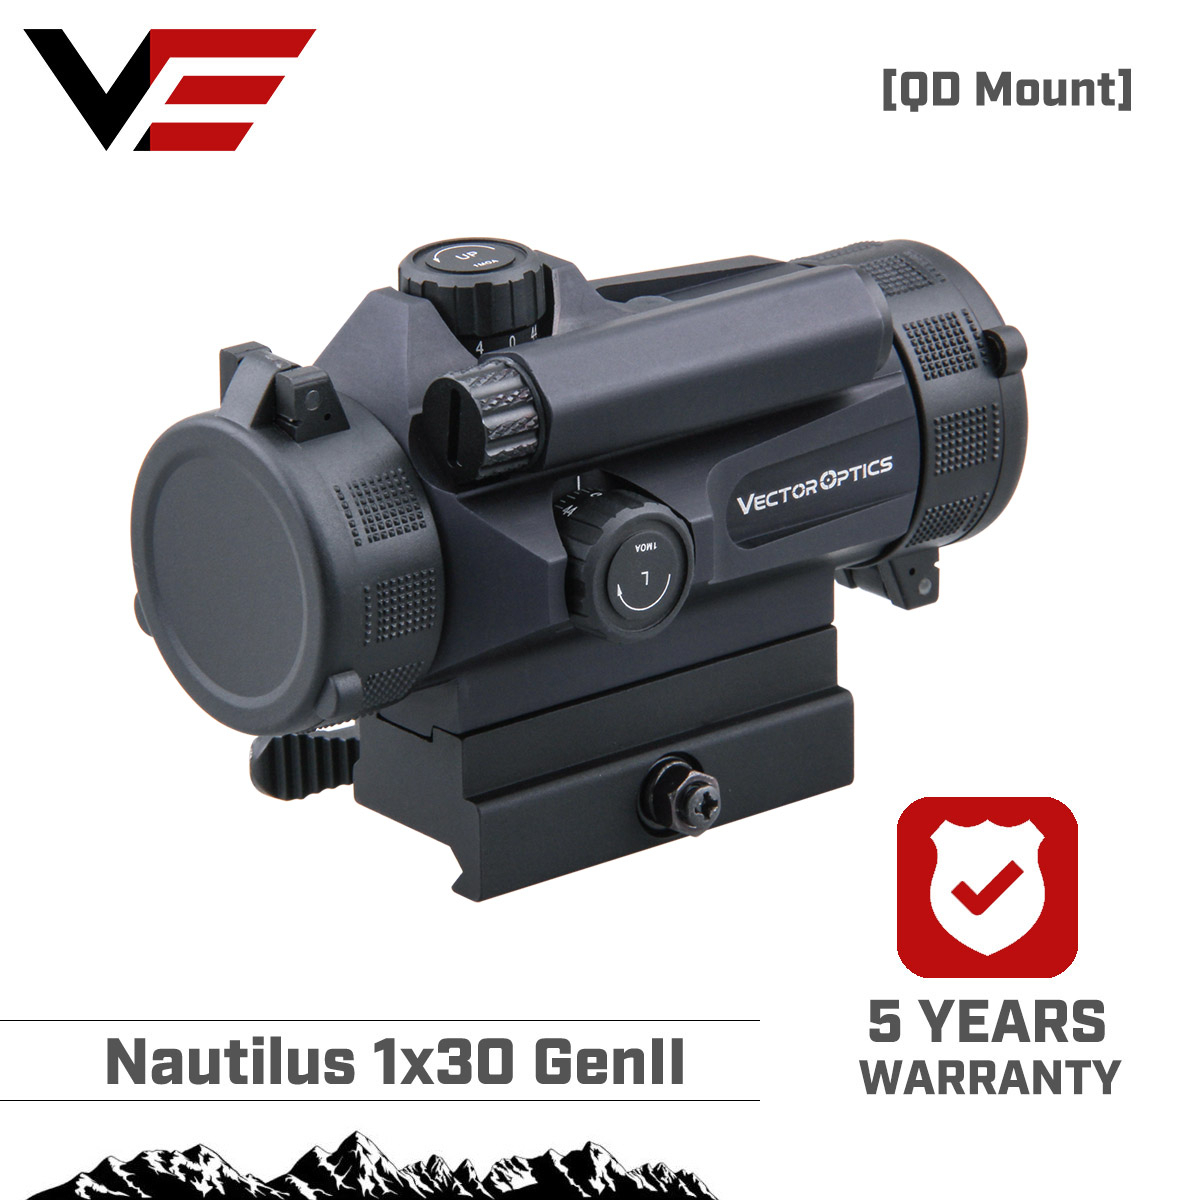 Vector Optics Nautilus 1x30 QD GenII Tactical Red Dot Sight Auto Light Sense 3MOA Dot Size Picatinny Quick Release Mount